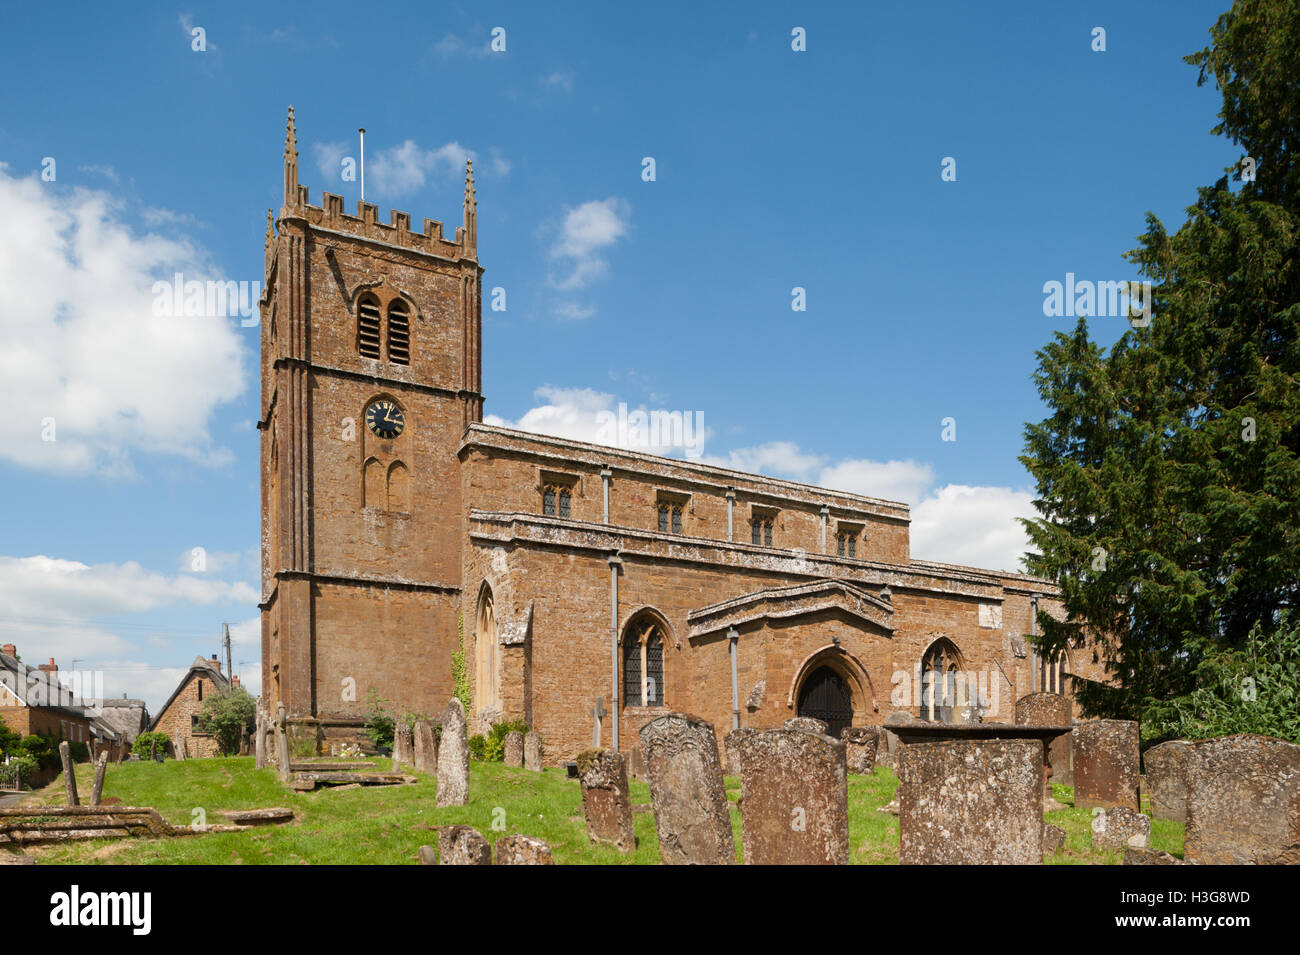 All Saints Church, Wroxton, North Oxfordshire, England, UK - Stock Image